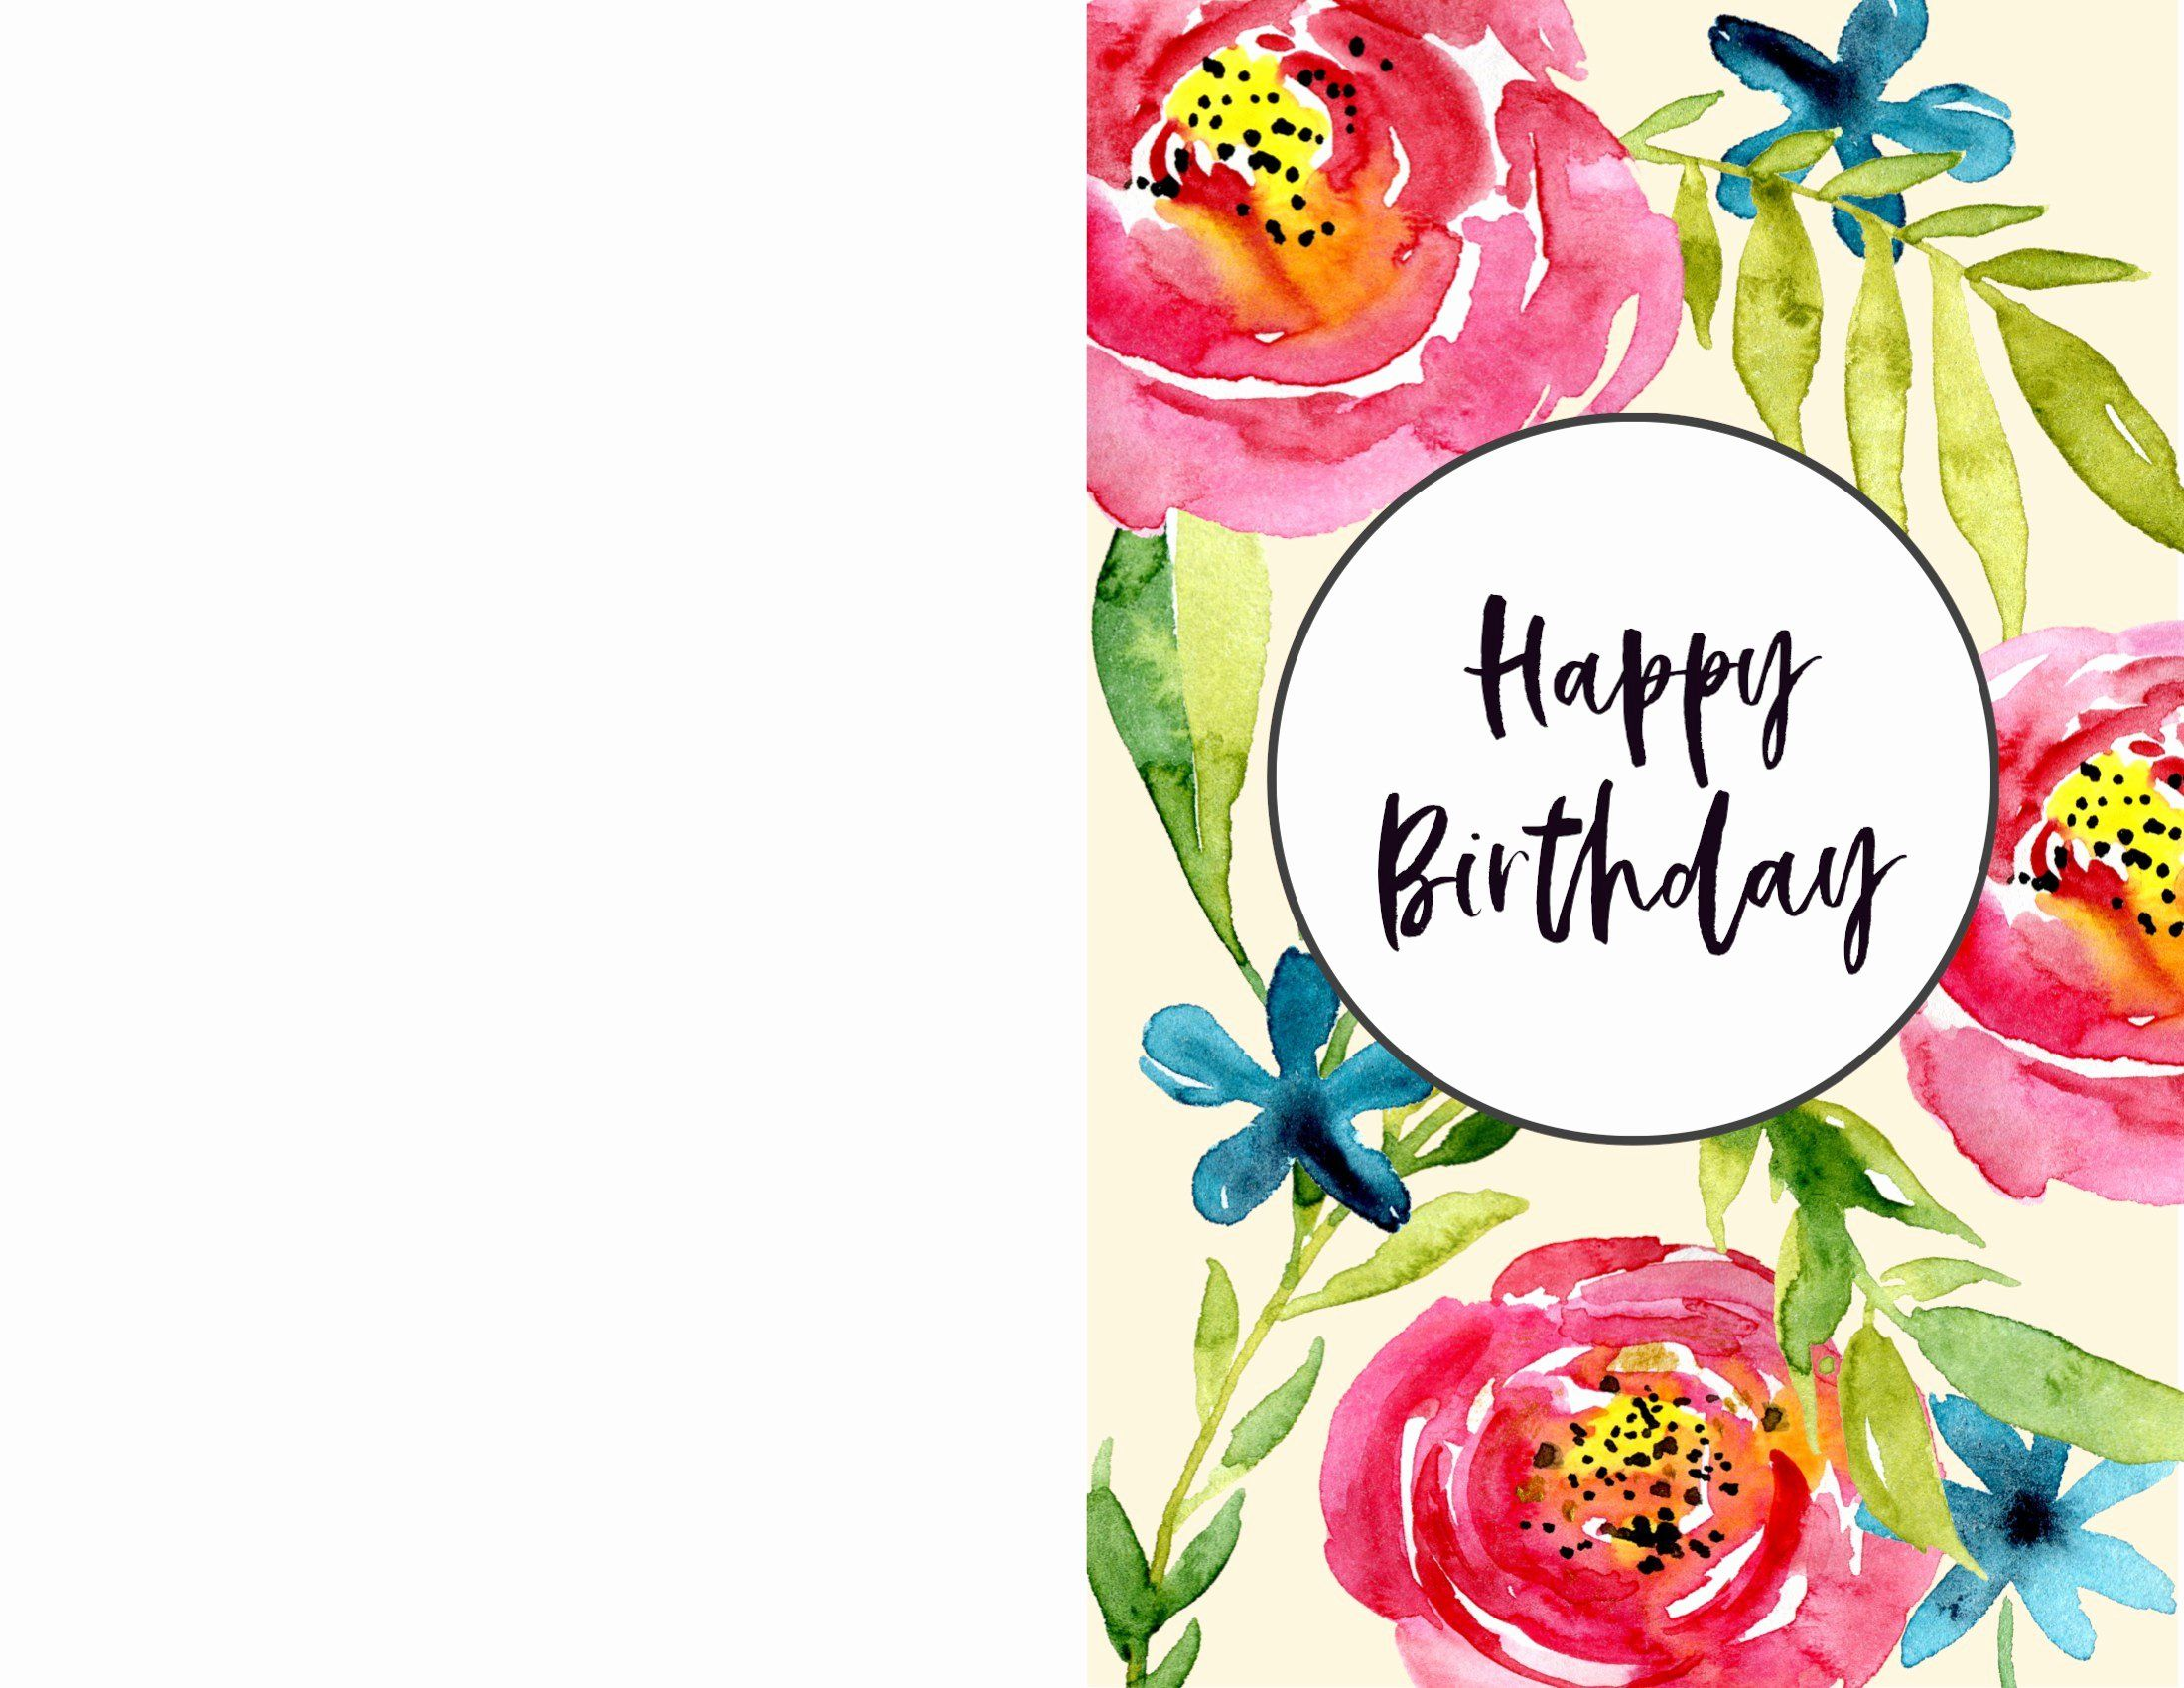 Coloring Buttercream Flowers New Coloring Pages 56 Outstanding Printable C Birthday Cards To Print Happy Birthday Cards Printable Free Printable Birthday Cards